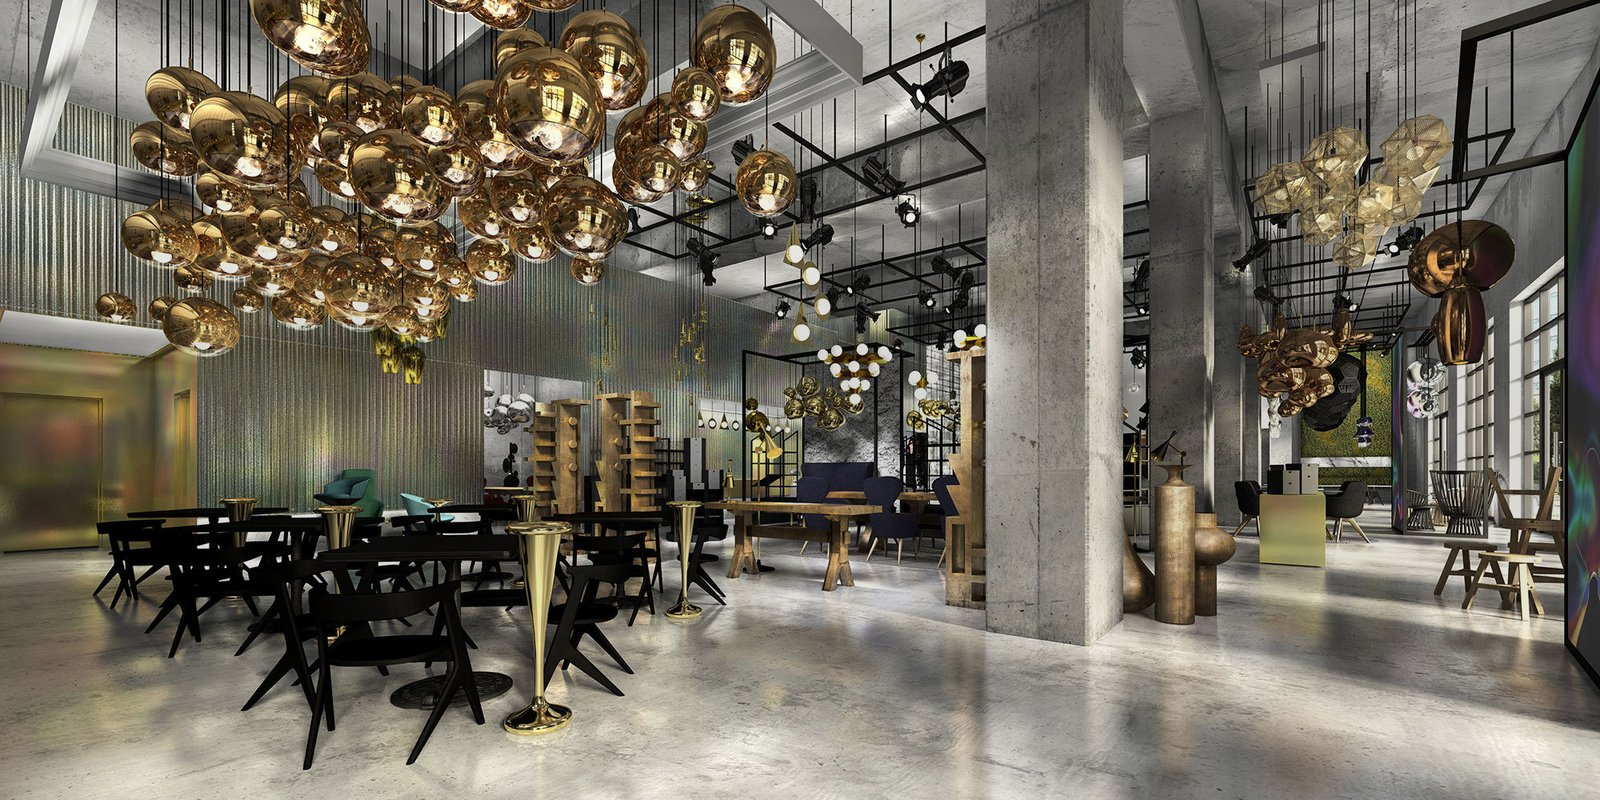 In Culver City, Tom Dixon has collaborated with concept boutique Curve for an integrated showroom display that combines fashion, food, and furniture, including his Slab chairs, Mirror Ball lights, and Etch Shade pendants.  Photo 3 of 3 in Twenty Minutes With:  Tom Dixon